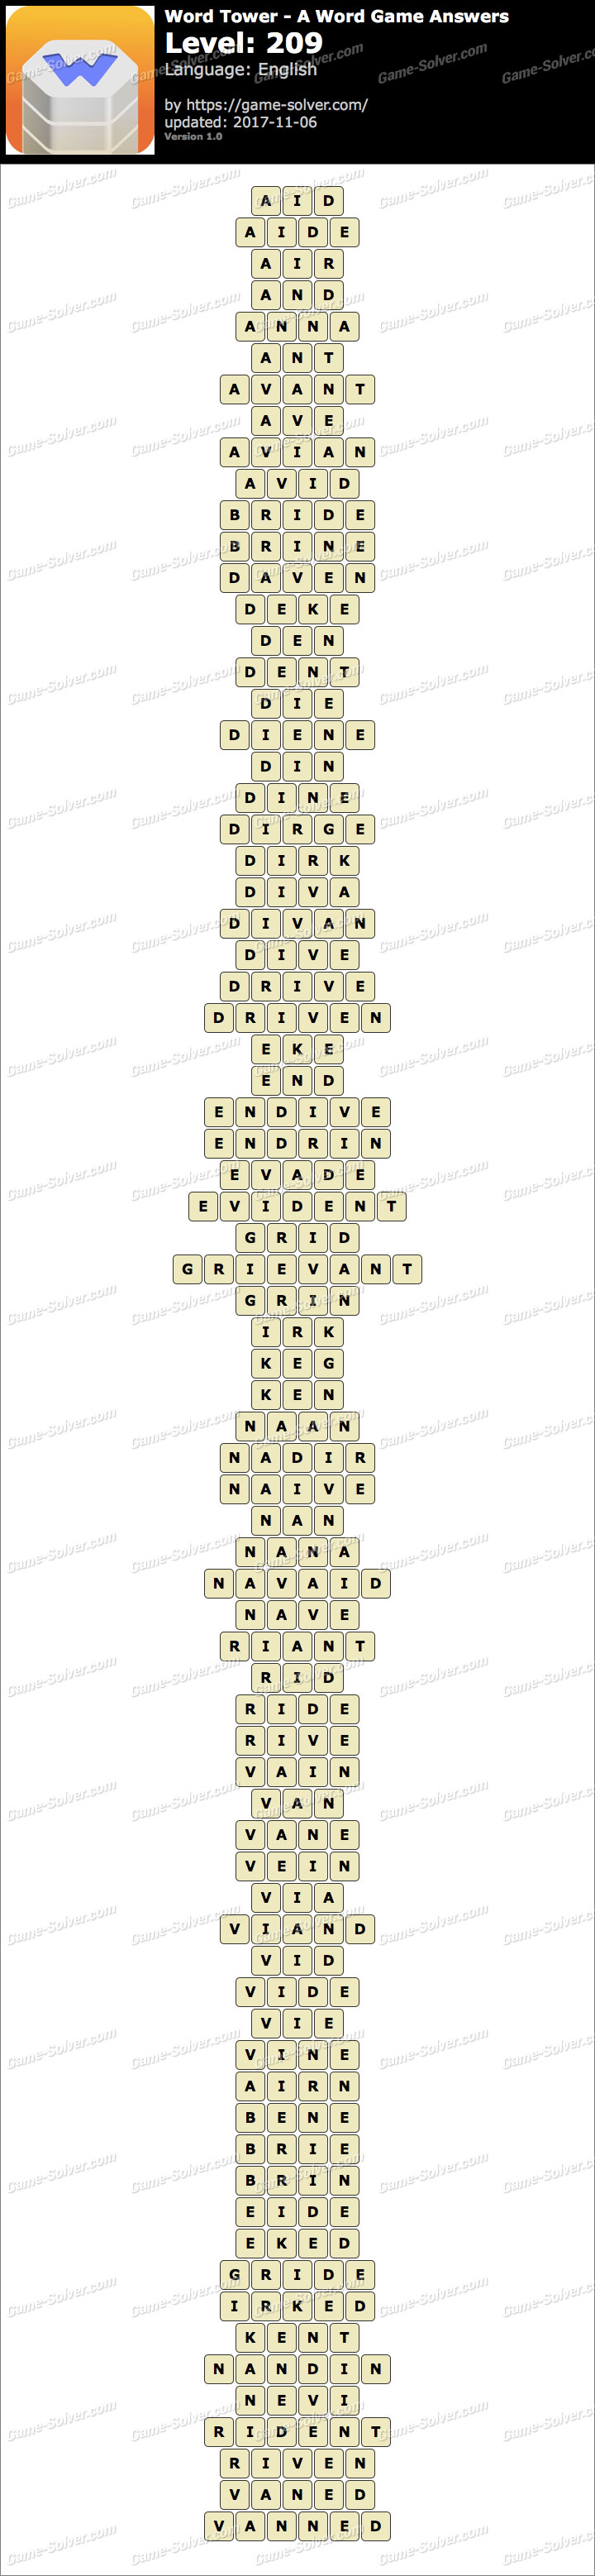 Word Tower Level 209 Answers